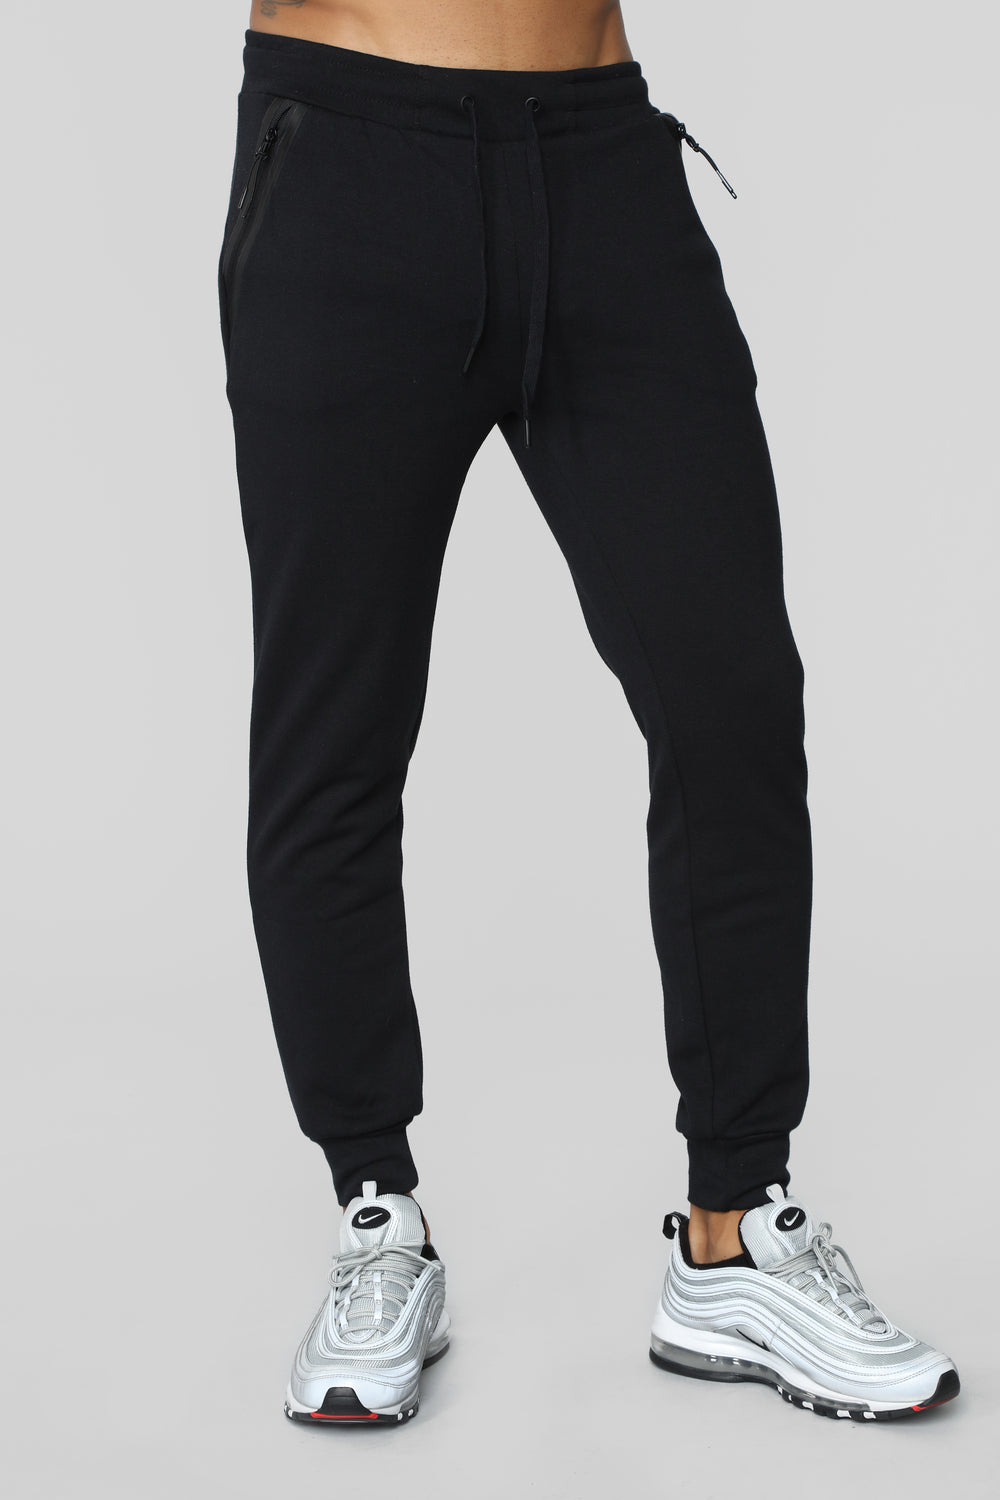 Lay Back And Relax Joggers - Black